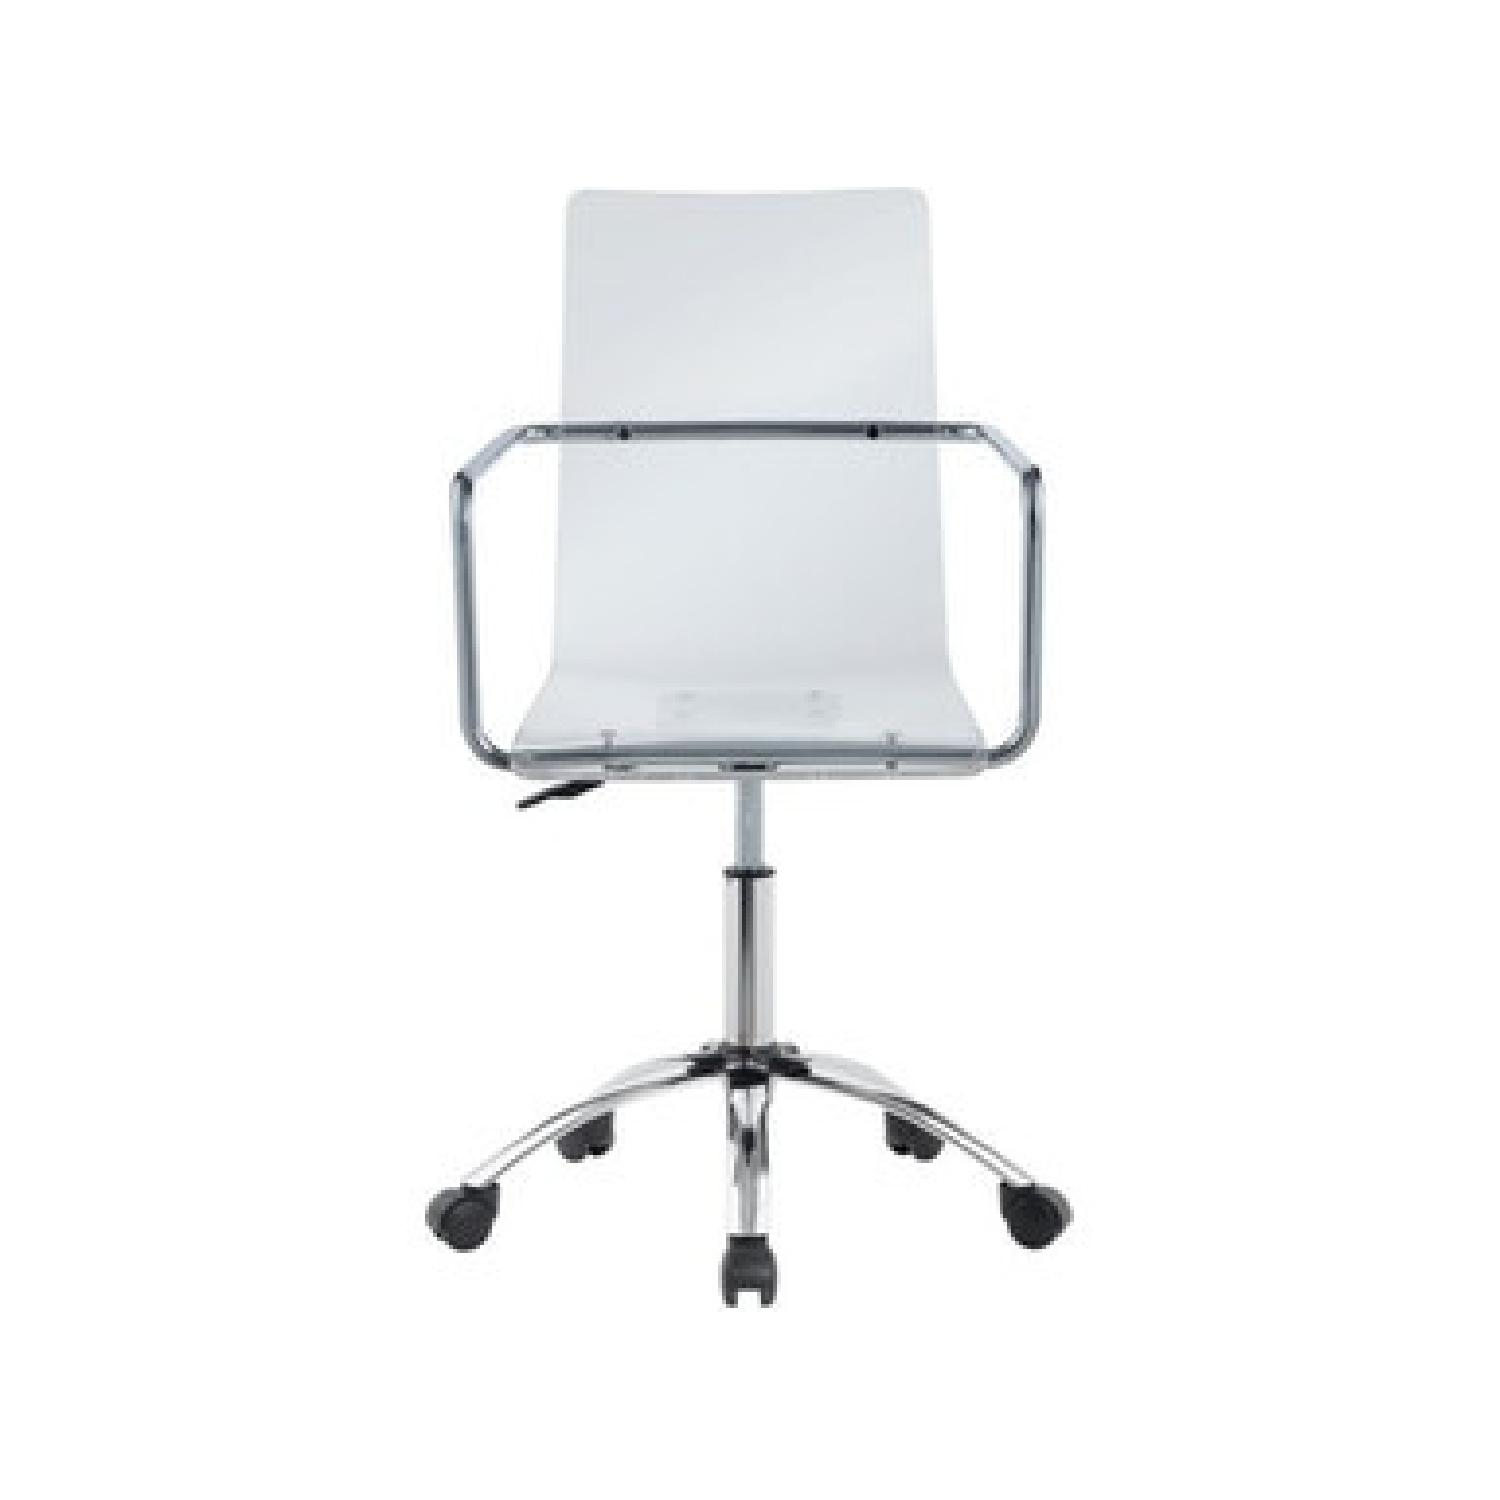 Clear Acrylic Office Chair - image-1